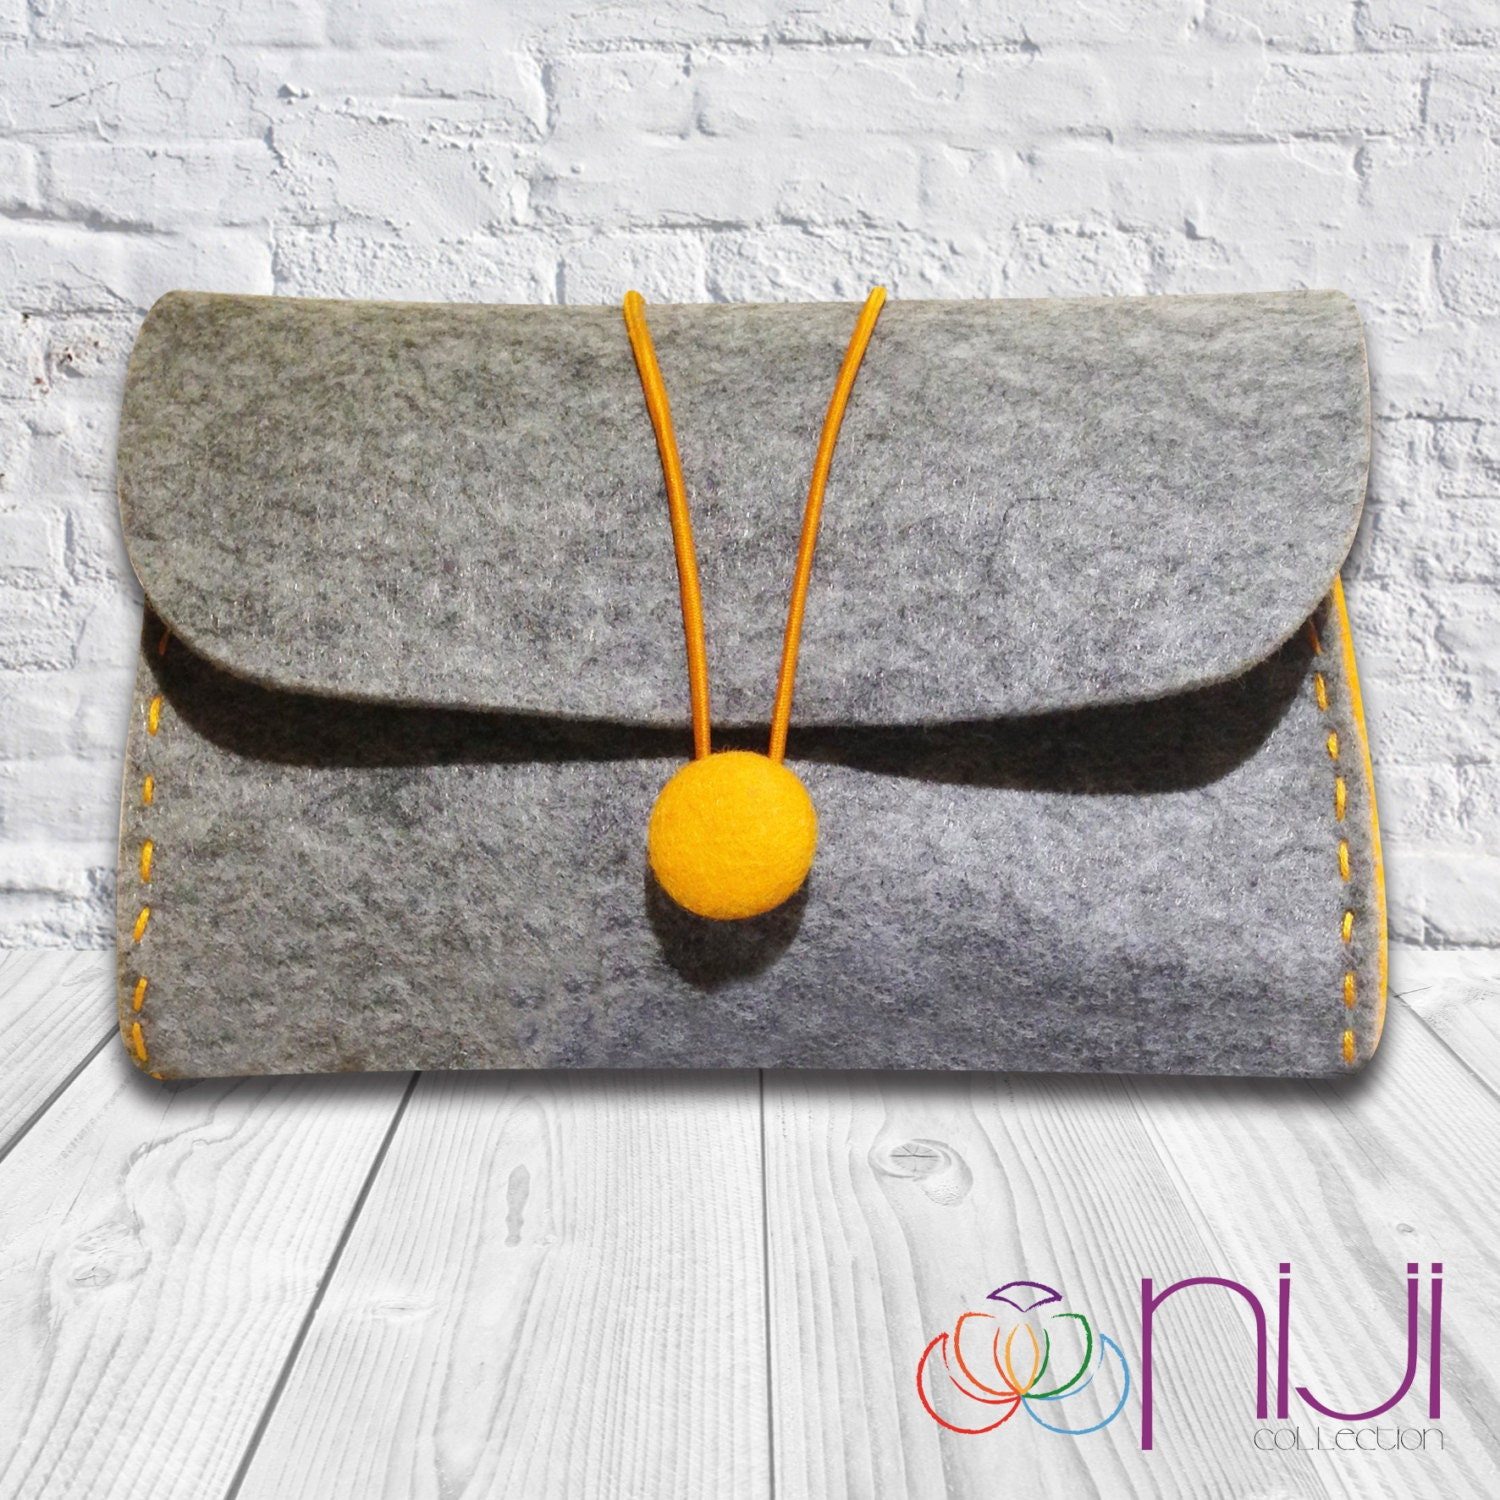 Felt Bag, Cosmetic Bag, Handmade Felt Case Pouch, iPhone Bag, Telephone and Power Adapter Bag, Tobacco Bag Grey and Orange Bag - NIJICOLLECTION